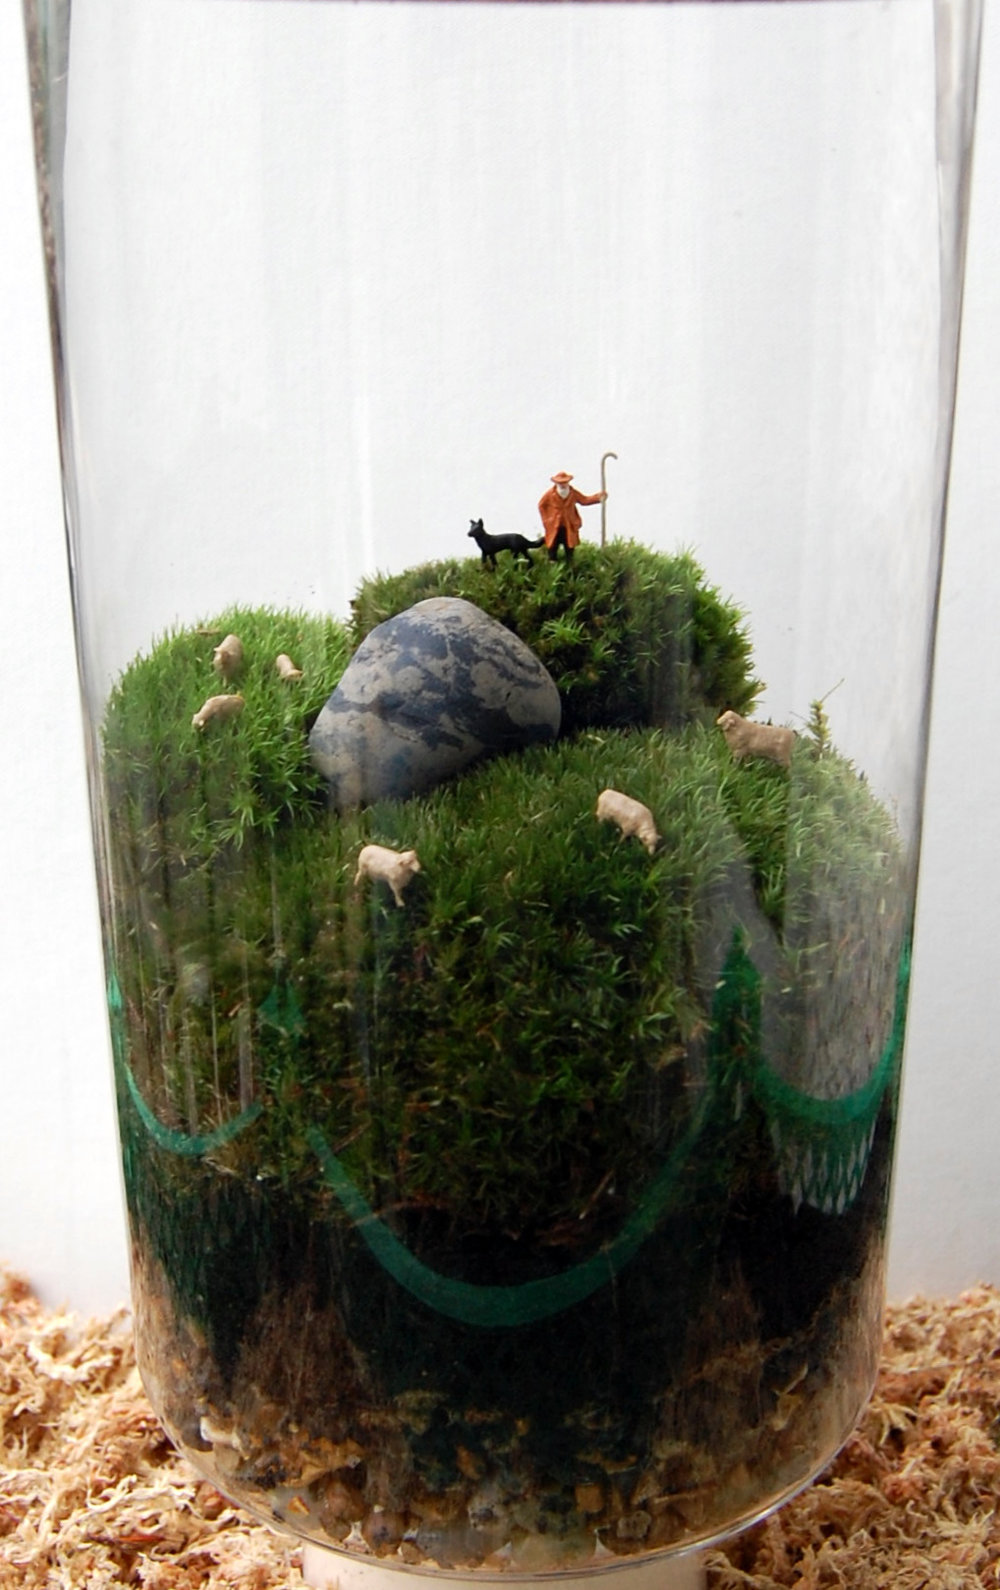 Marguertie Potter A terrarium minature garden. In this very hands-on one hour workshop you will learn how to create and care for your very own terrarium. The workshop includes all materials click HERE to find out more Dates: Saturday 4th & Sunday 5th March 2017 Duration: 1 hour Price: £40